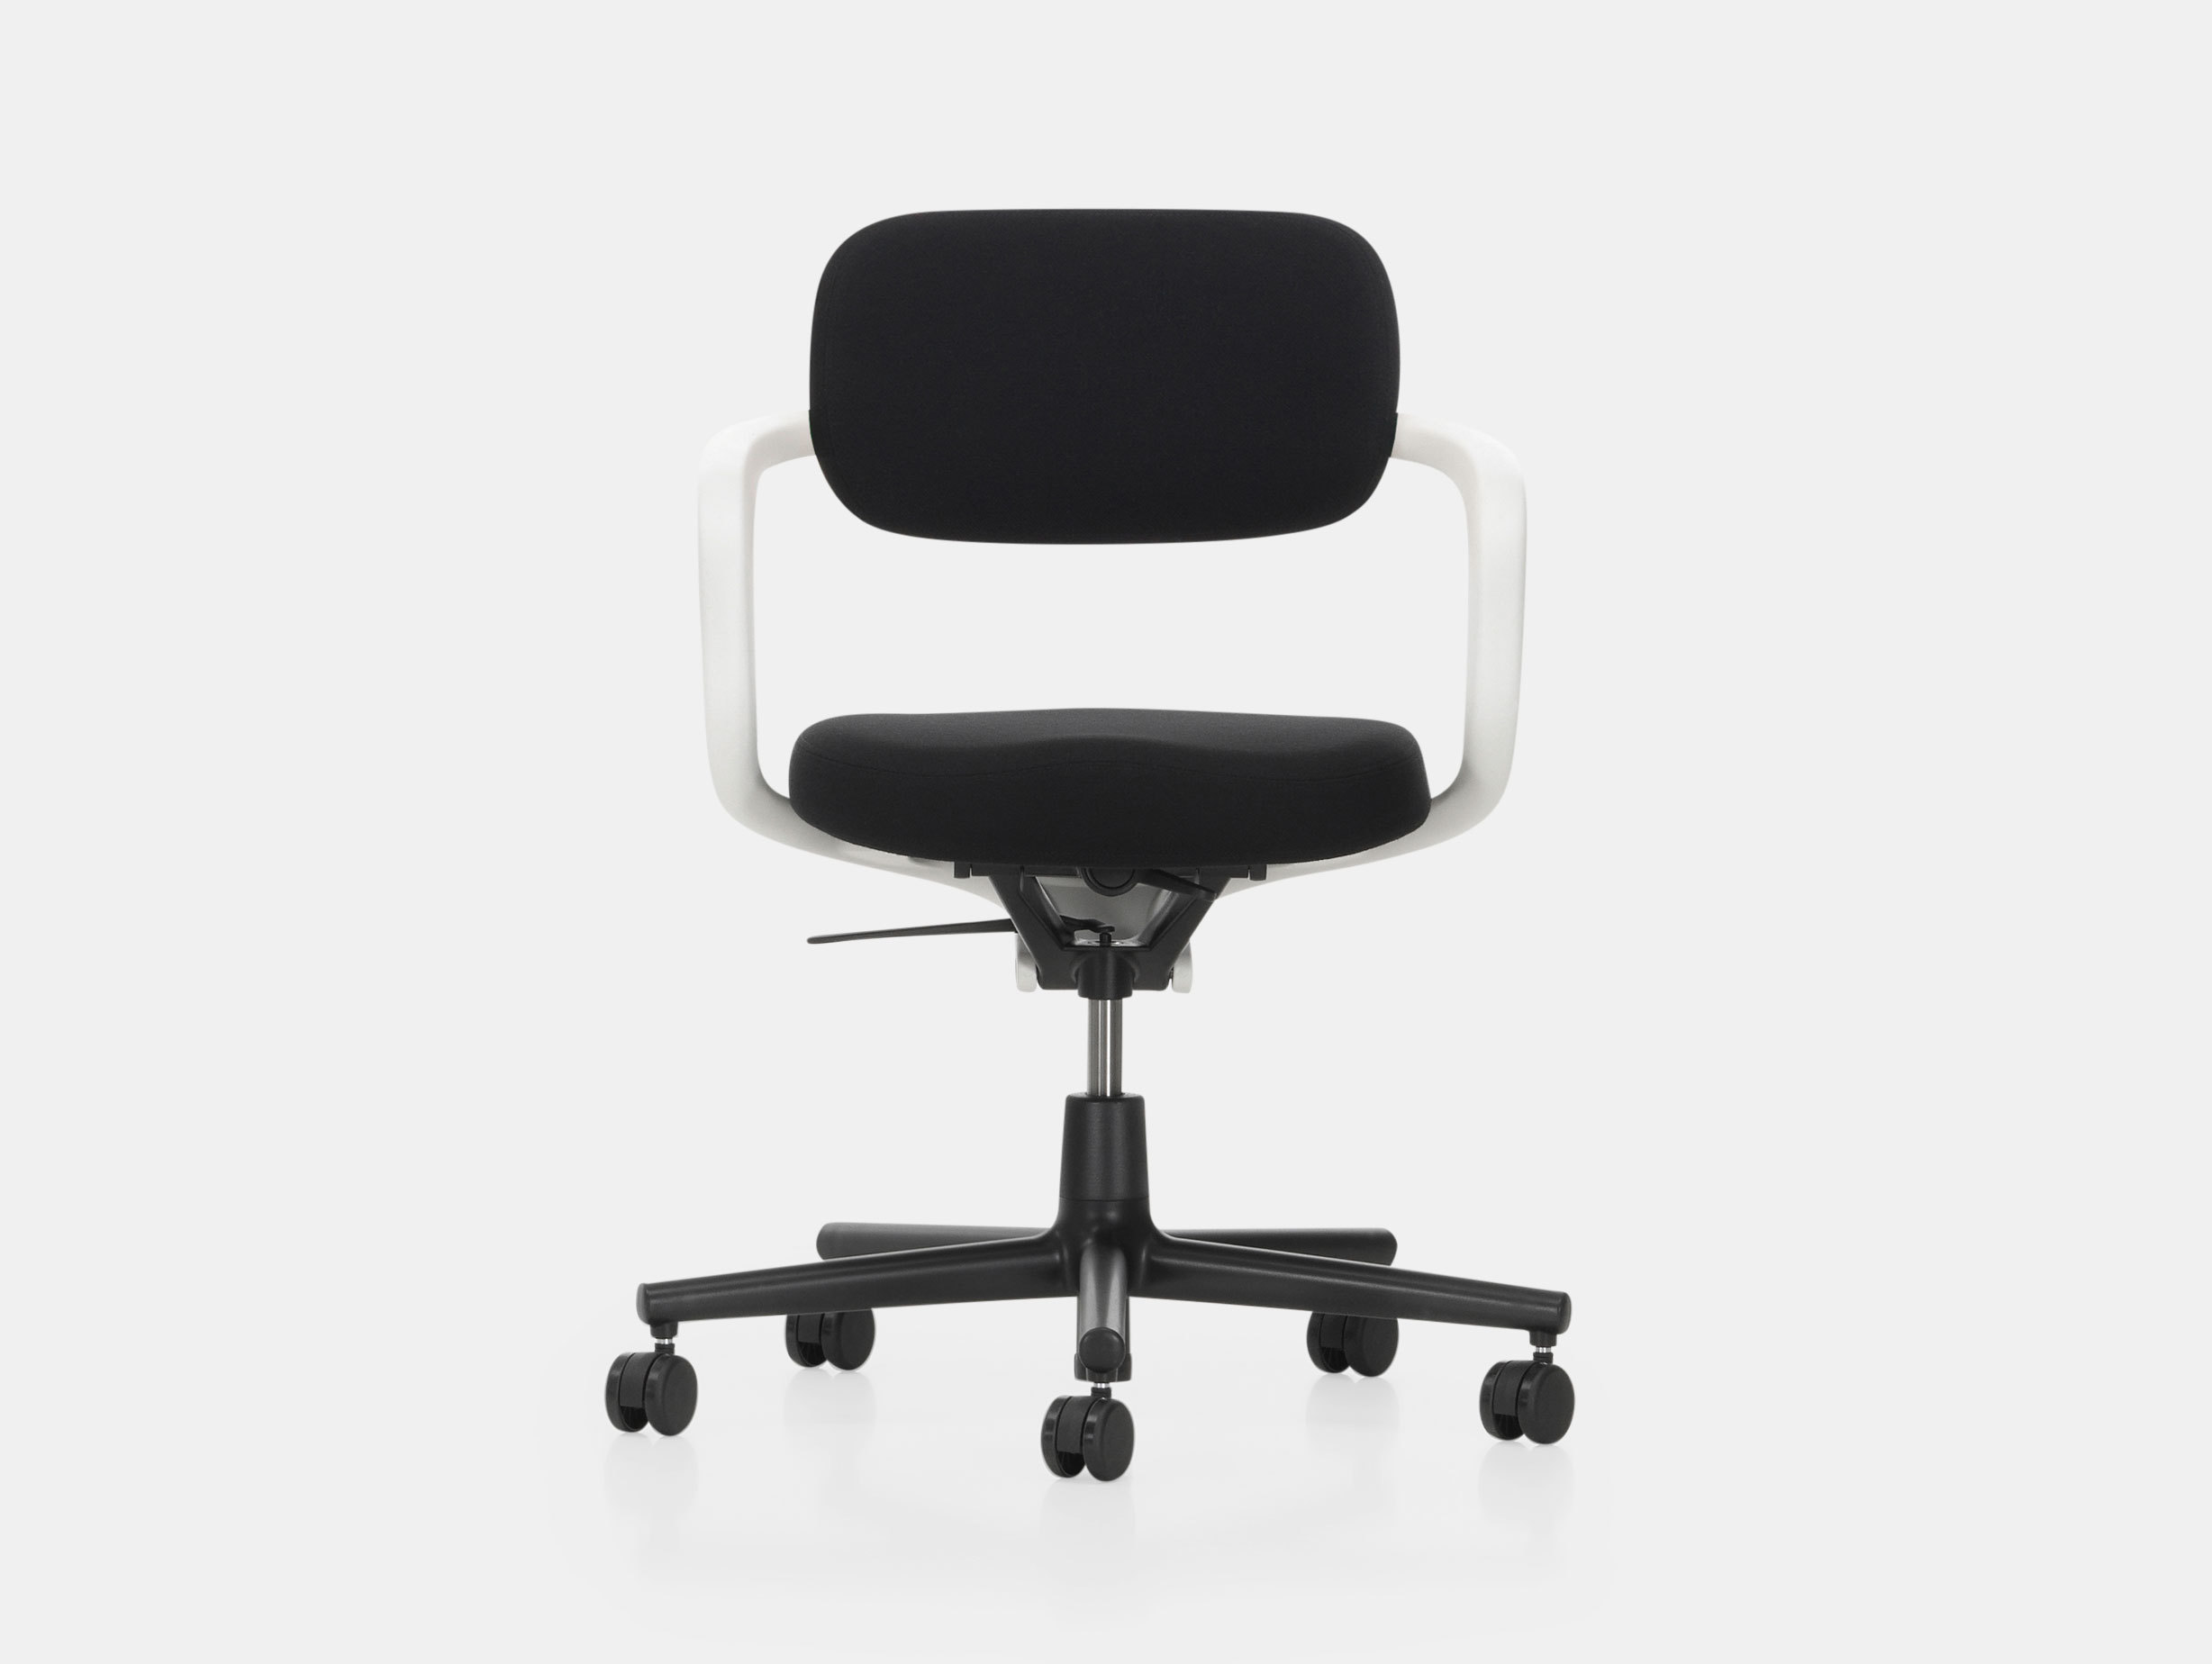 Allstar Office Chair image 1